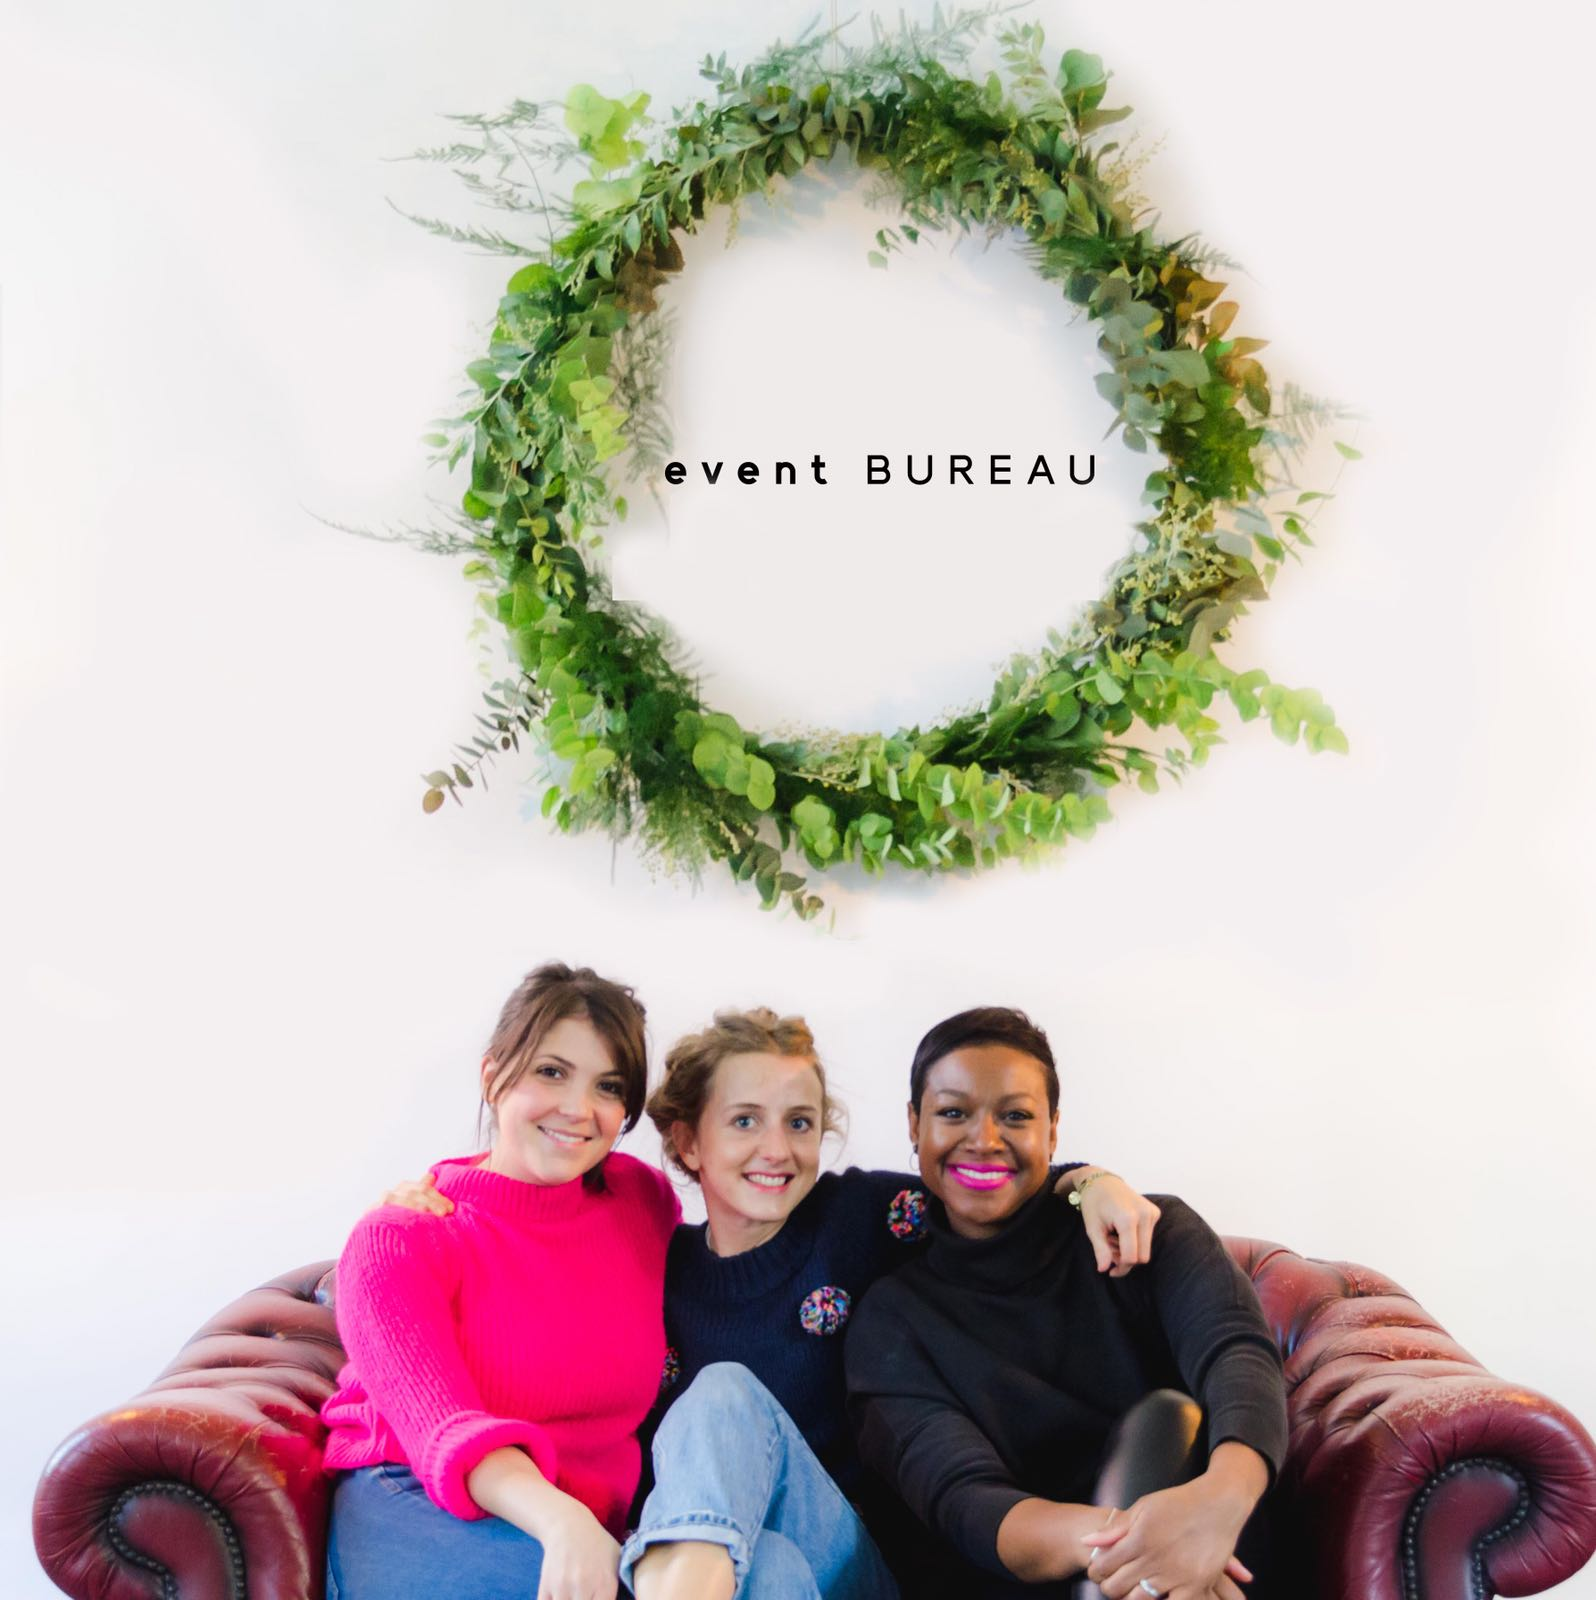 Hello! - Welcome to the Event Bureau Journal. Here we will share our inspiration, news and all that is between.For our first post we would like to introduce our team. Vanessa, Alice and Fiona. Between us we have experience in graphic design, 3D and CAD, floristry, calligraphy, photography, interior and exhibition design, as well as illustration and styling.Event Bureau was born after hosting a succession of our own events and realising there lacked a trustworthy, accessible and approachable design firm that was willing to help with as little, or as many, aspects of our celebrations as we needed. We seized our moment to offer a 'pick and mix' style service.Our long-standing friendship is at the core of everything we do. We hope you become a friend of ours too. Stay tuned on our social media and journal pages for the latest scoop and insights and to learn what we've recently been cooing over.